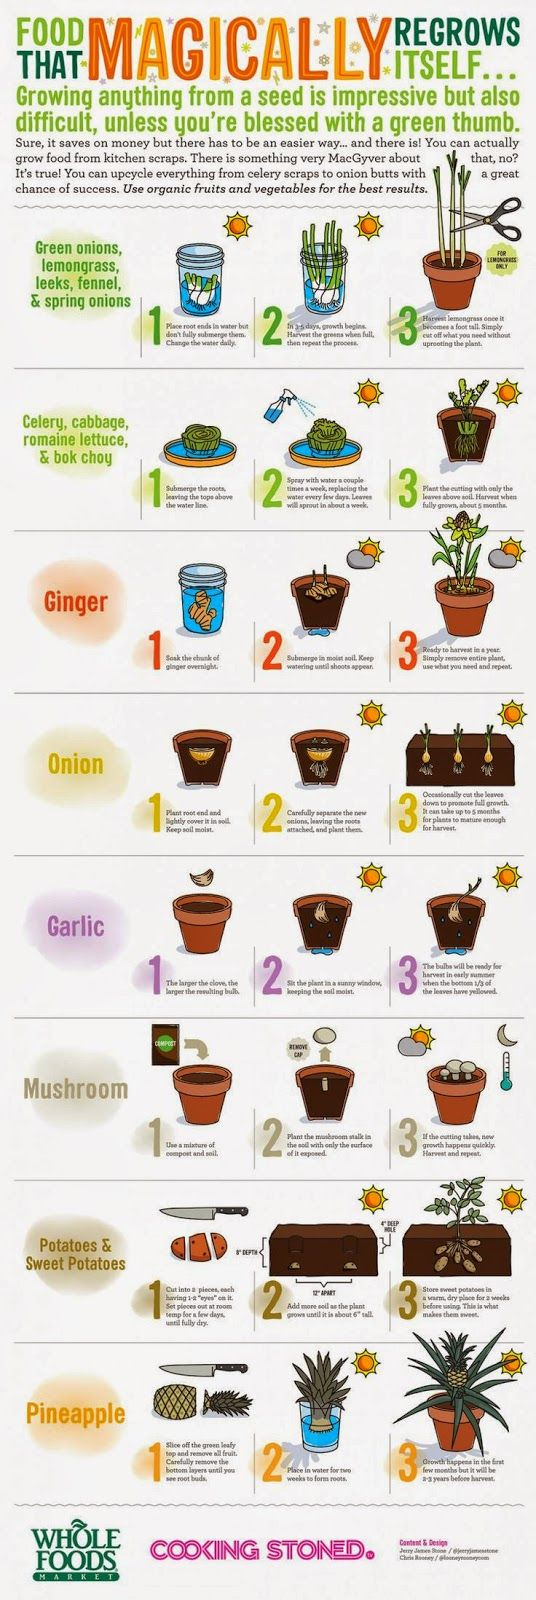 Food-That-Magically-Regrows-Itself.